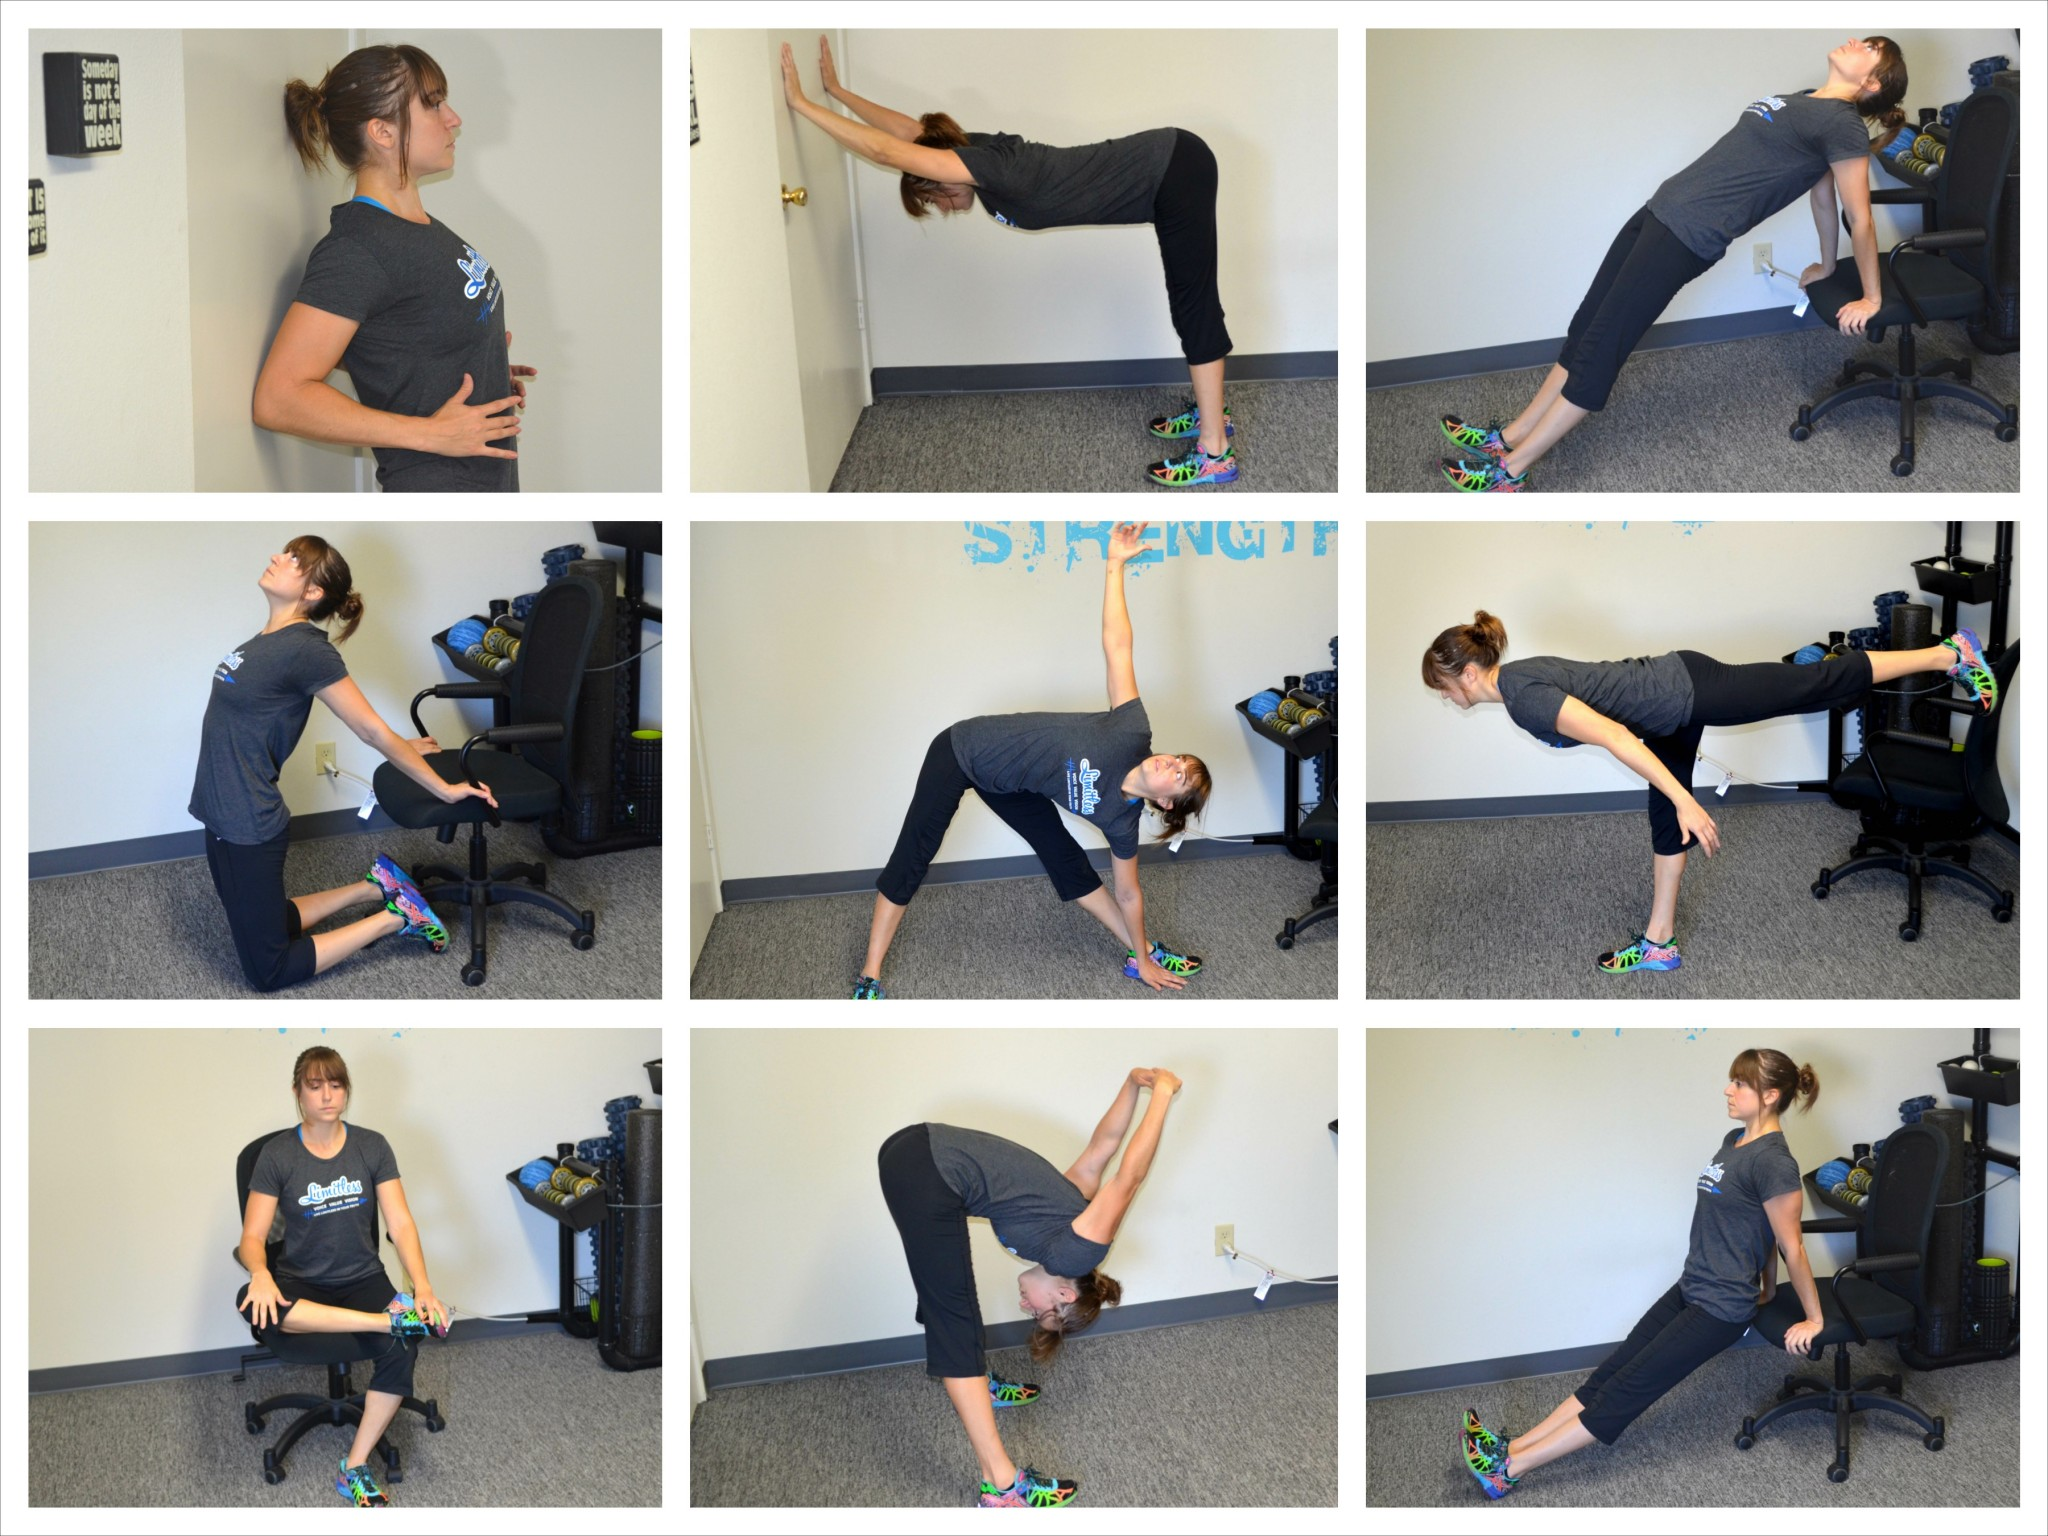 Desk Exercises – 10 Isometric Moves and Stretches To Do At Your Desk